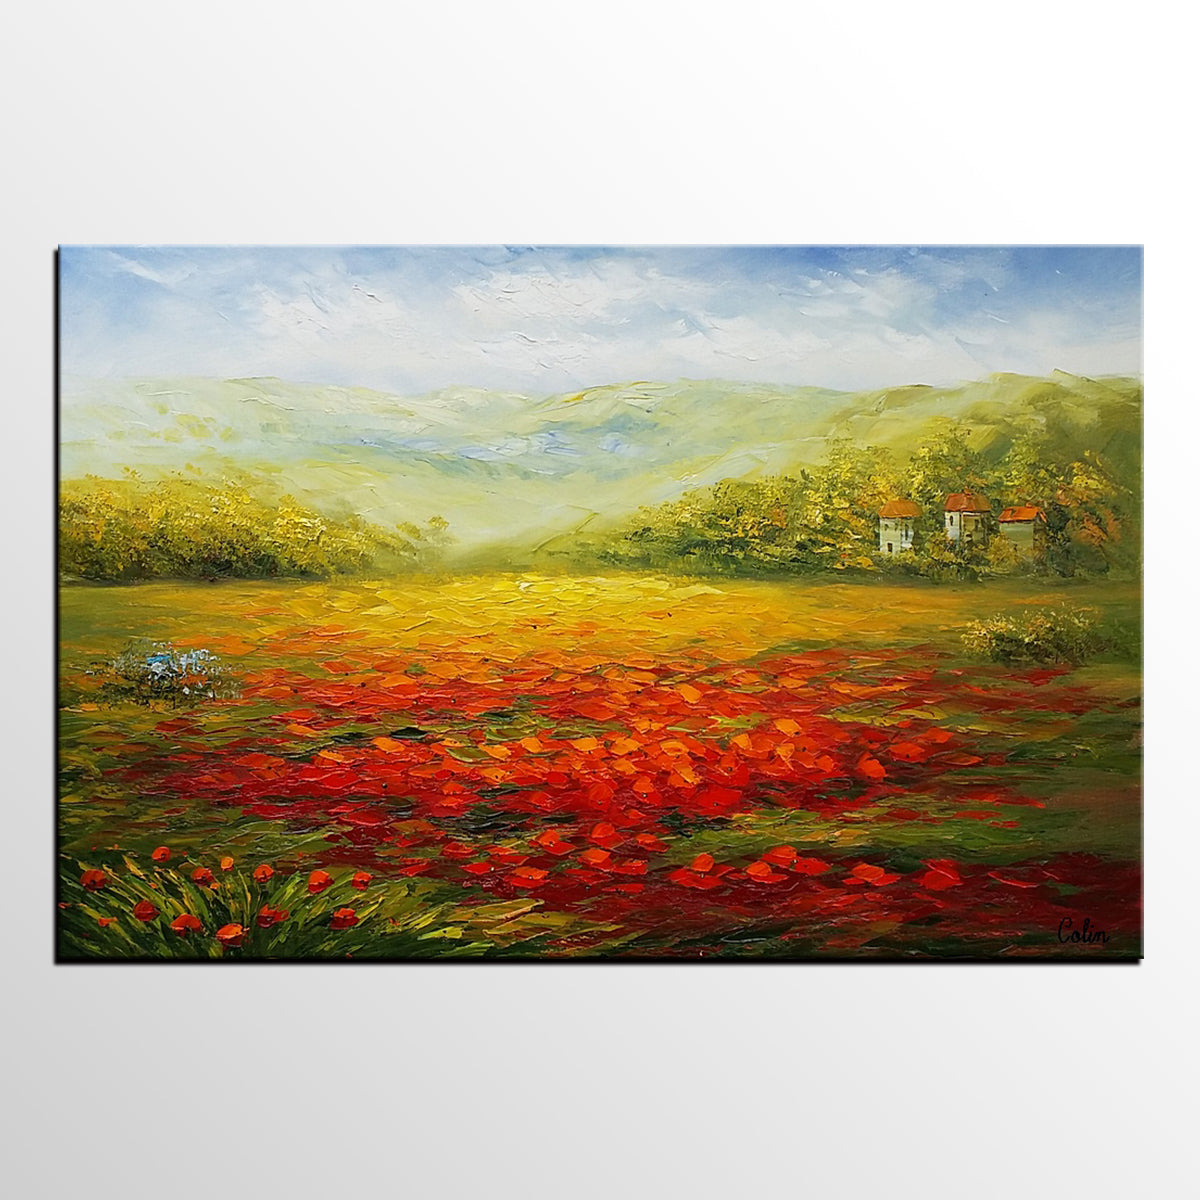 Poppy Field Painting, Landscape Painting, Large Art, Canvas Art, Wall Art, Original Painting, Canvas Painting, Oil Painting 291 - artworkcanvas